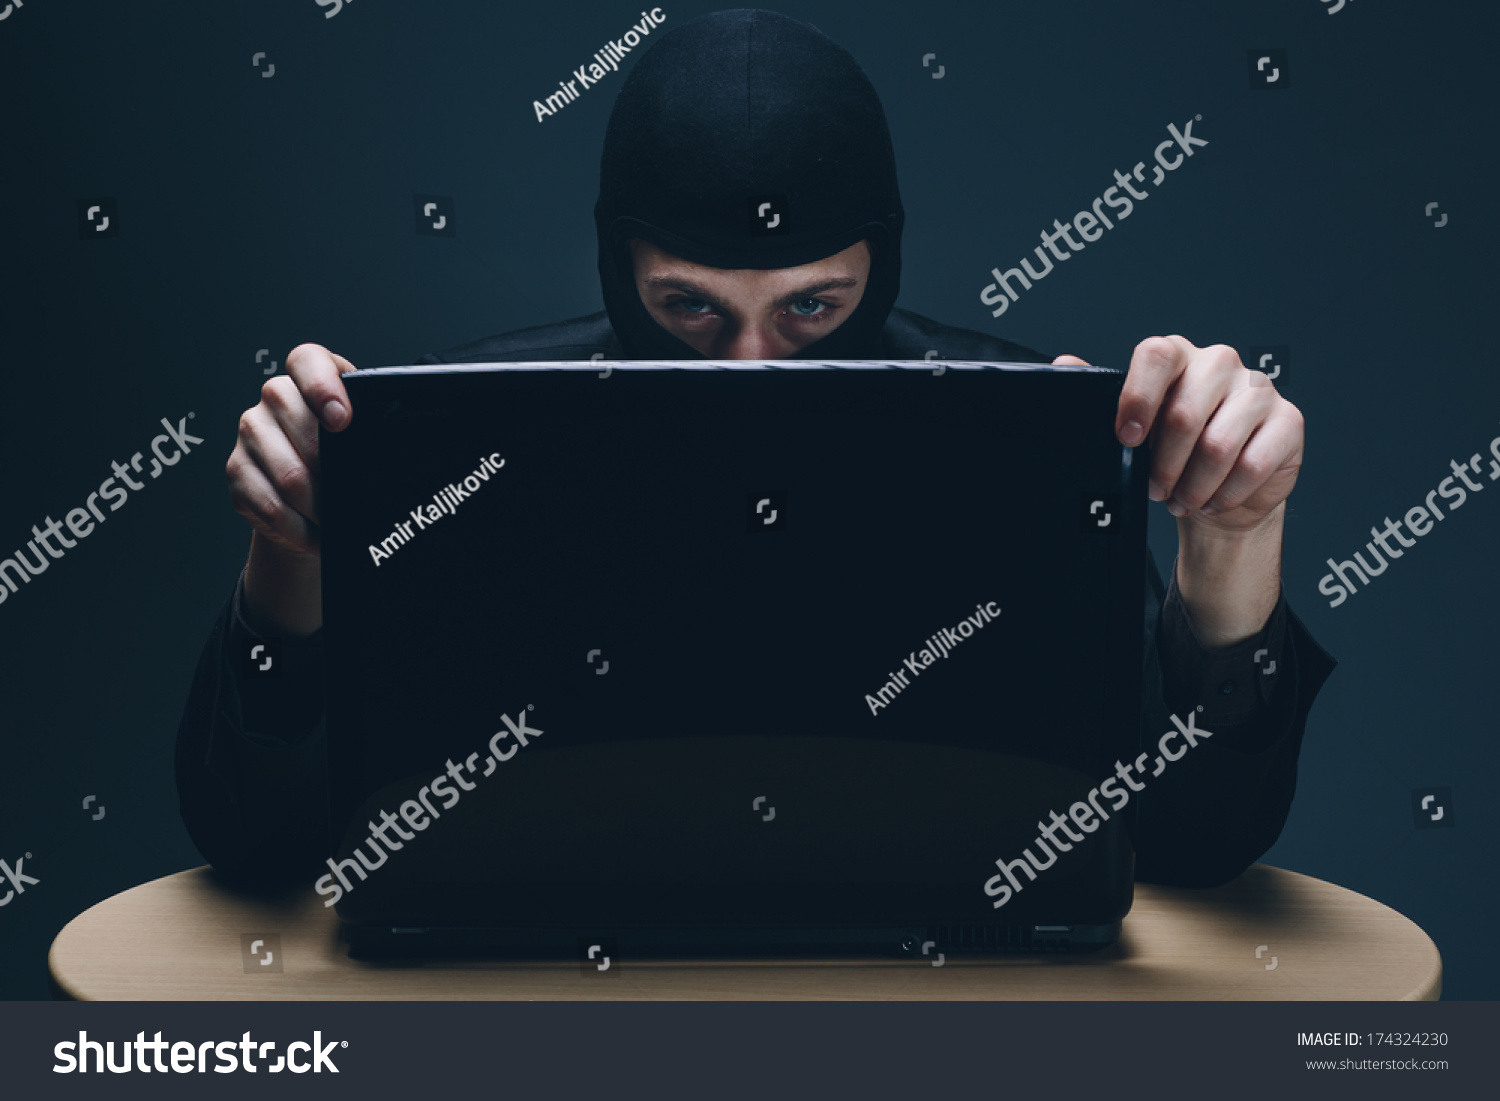 Furtive Masked Hacker Accessing Laptop Computer Stock Photo